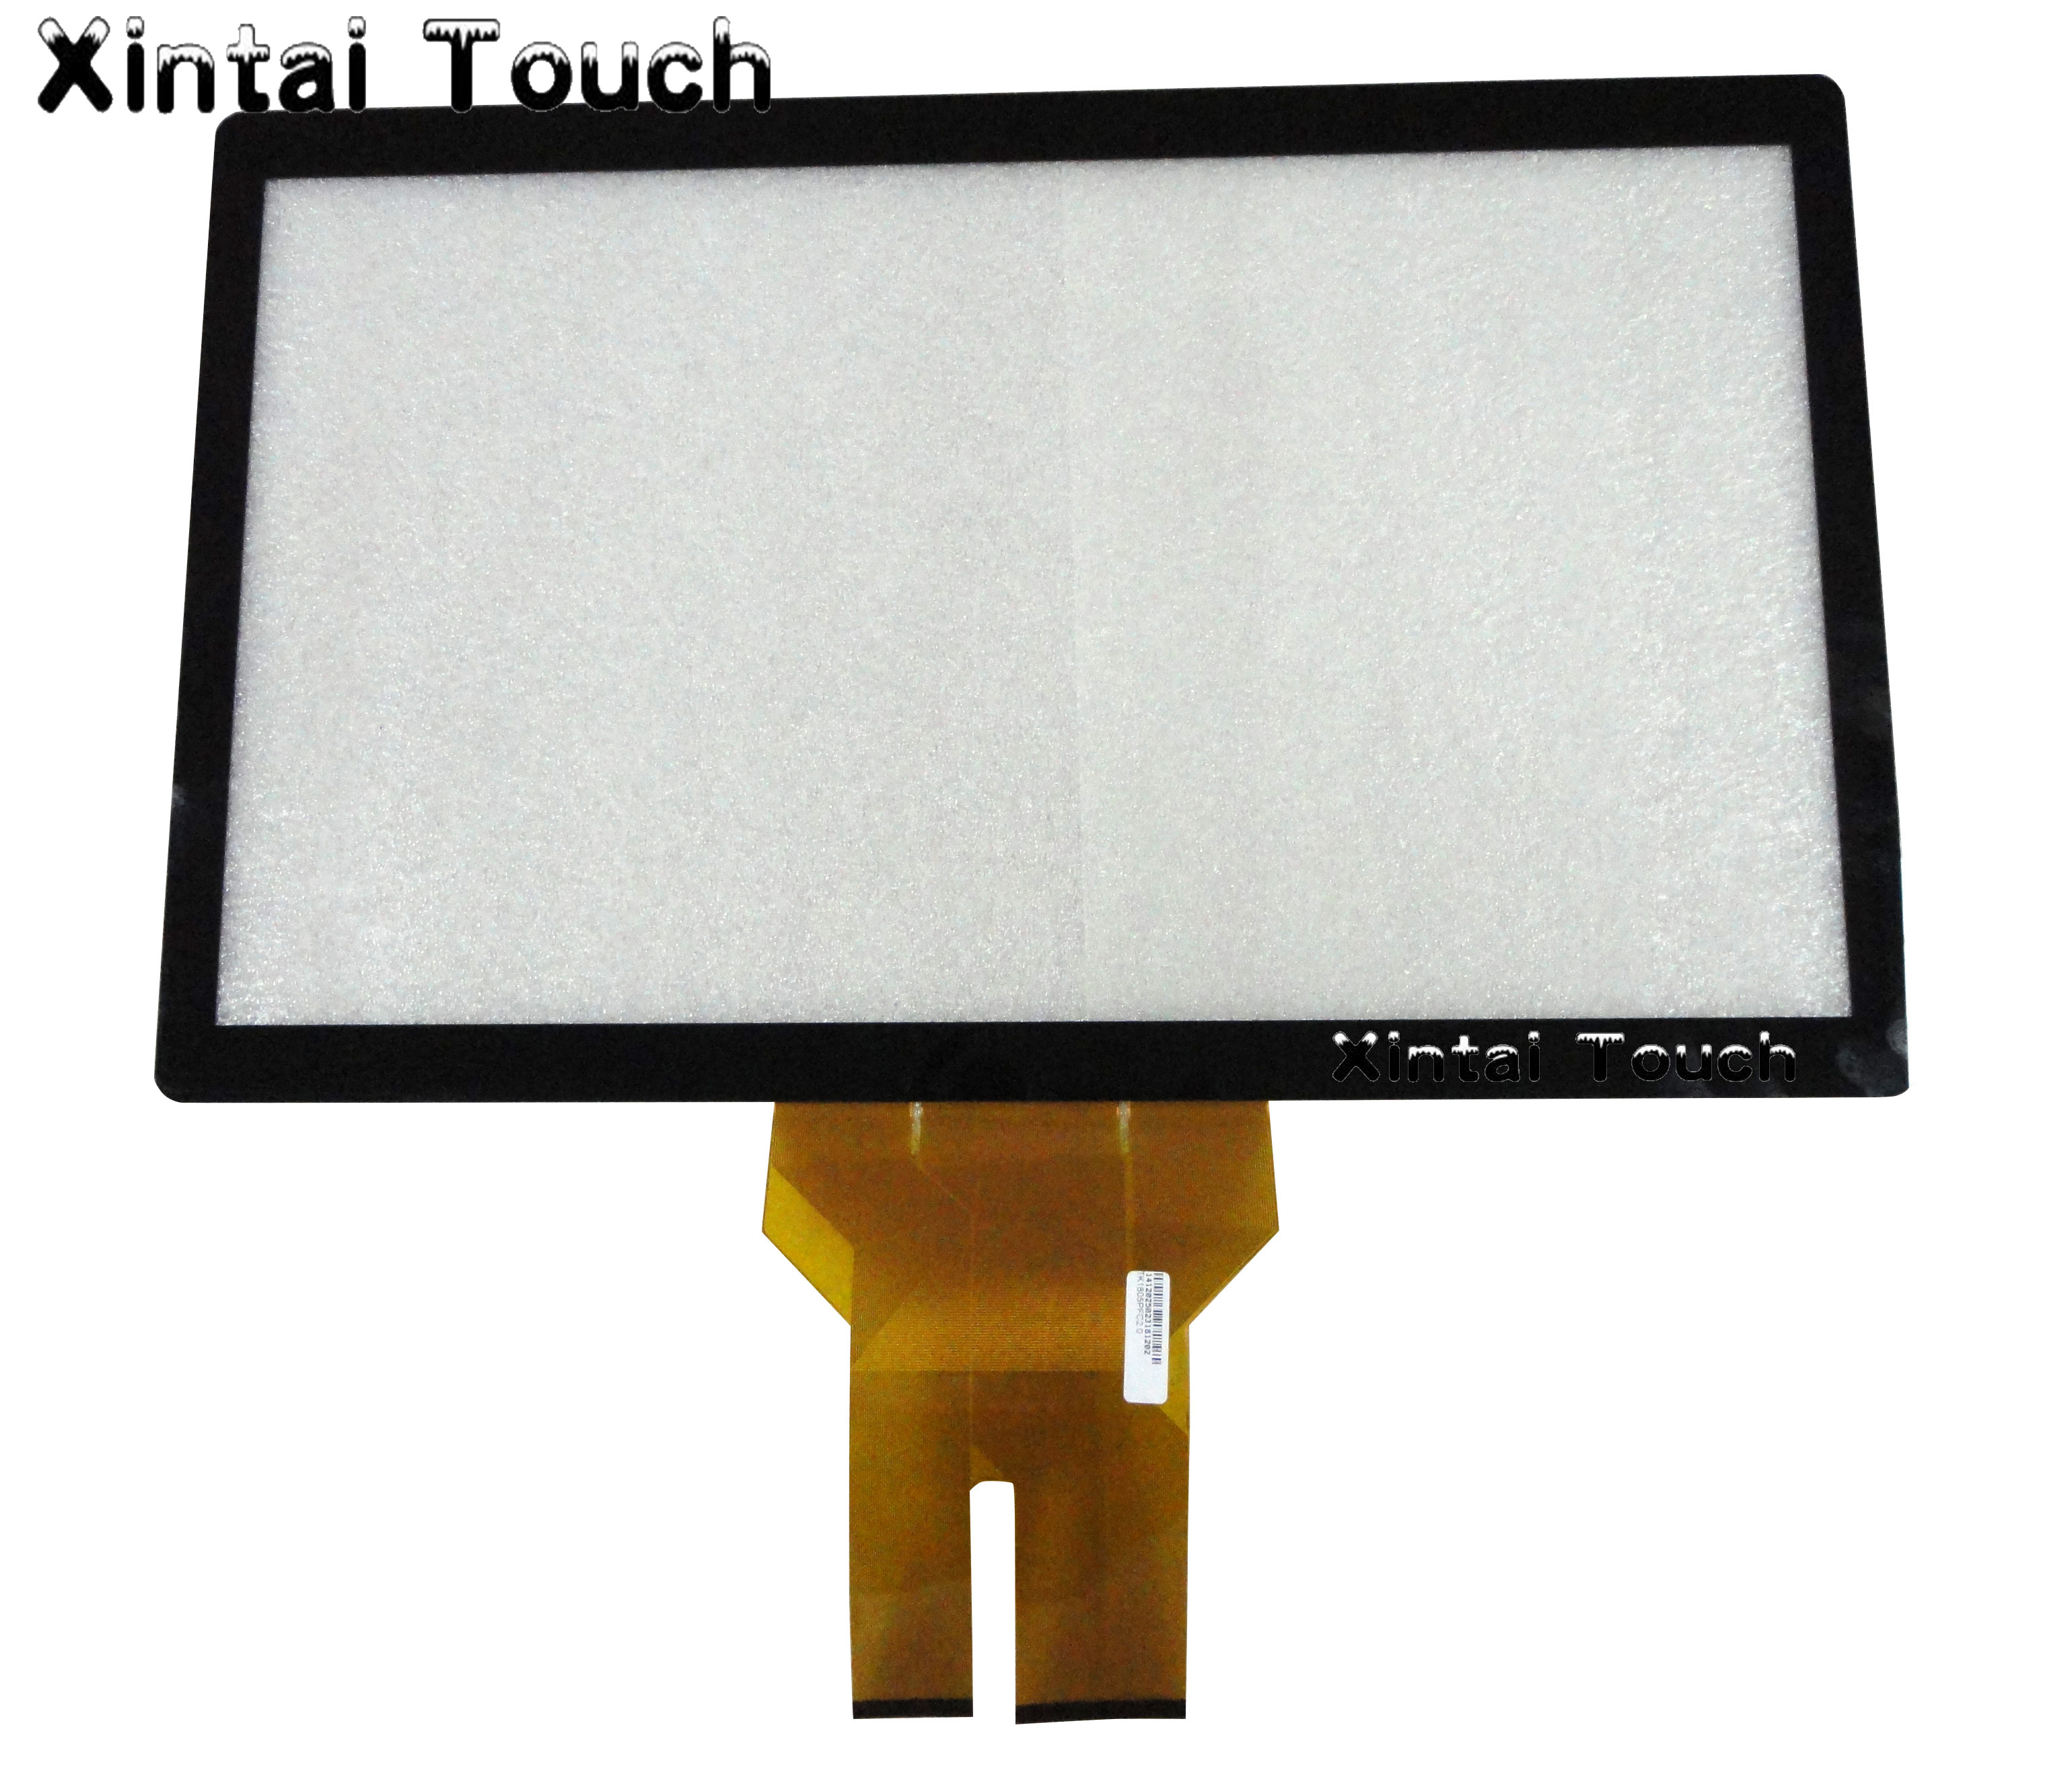 18.5 inch cheap Multi capacitive touch screen with glass/ capacitive touch screen overlay panel kit for touch table, kiosk etc 32 inch high definition 2 points multi touch screen panel ir multi touch screen overlay for touch table kiosk etc